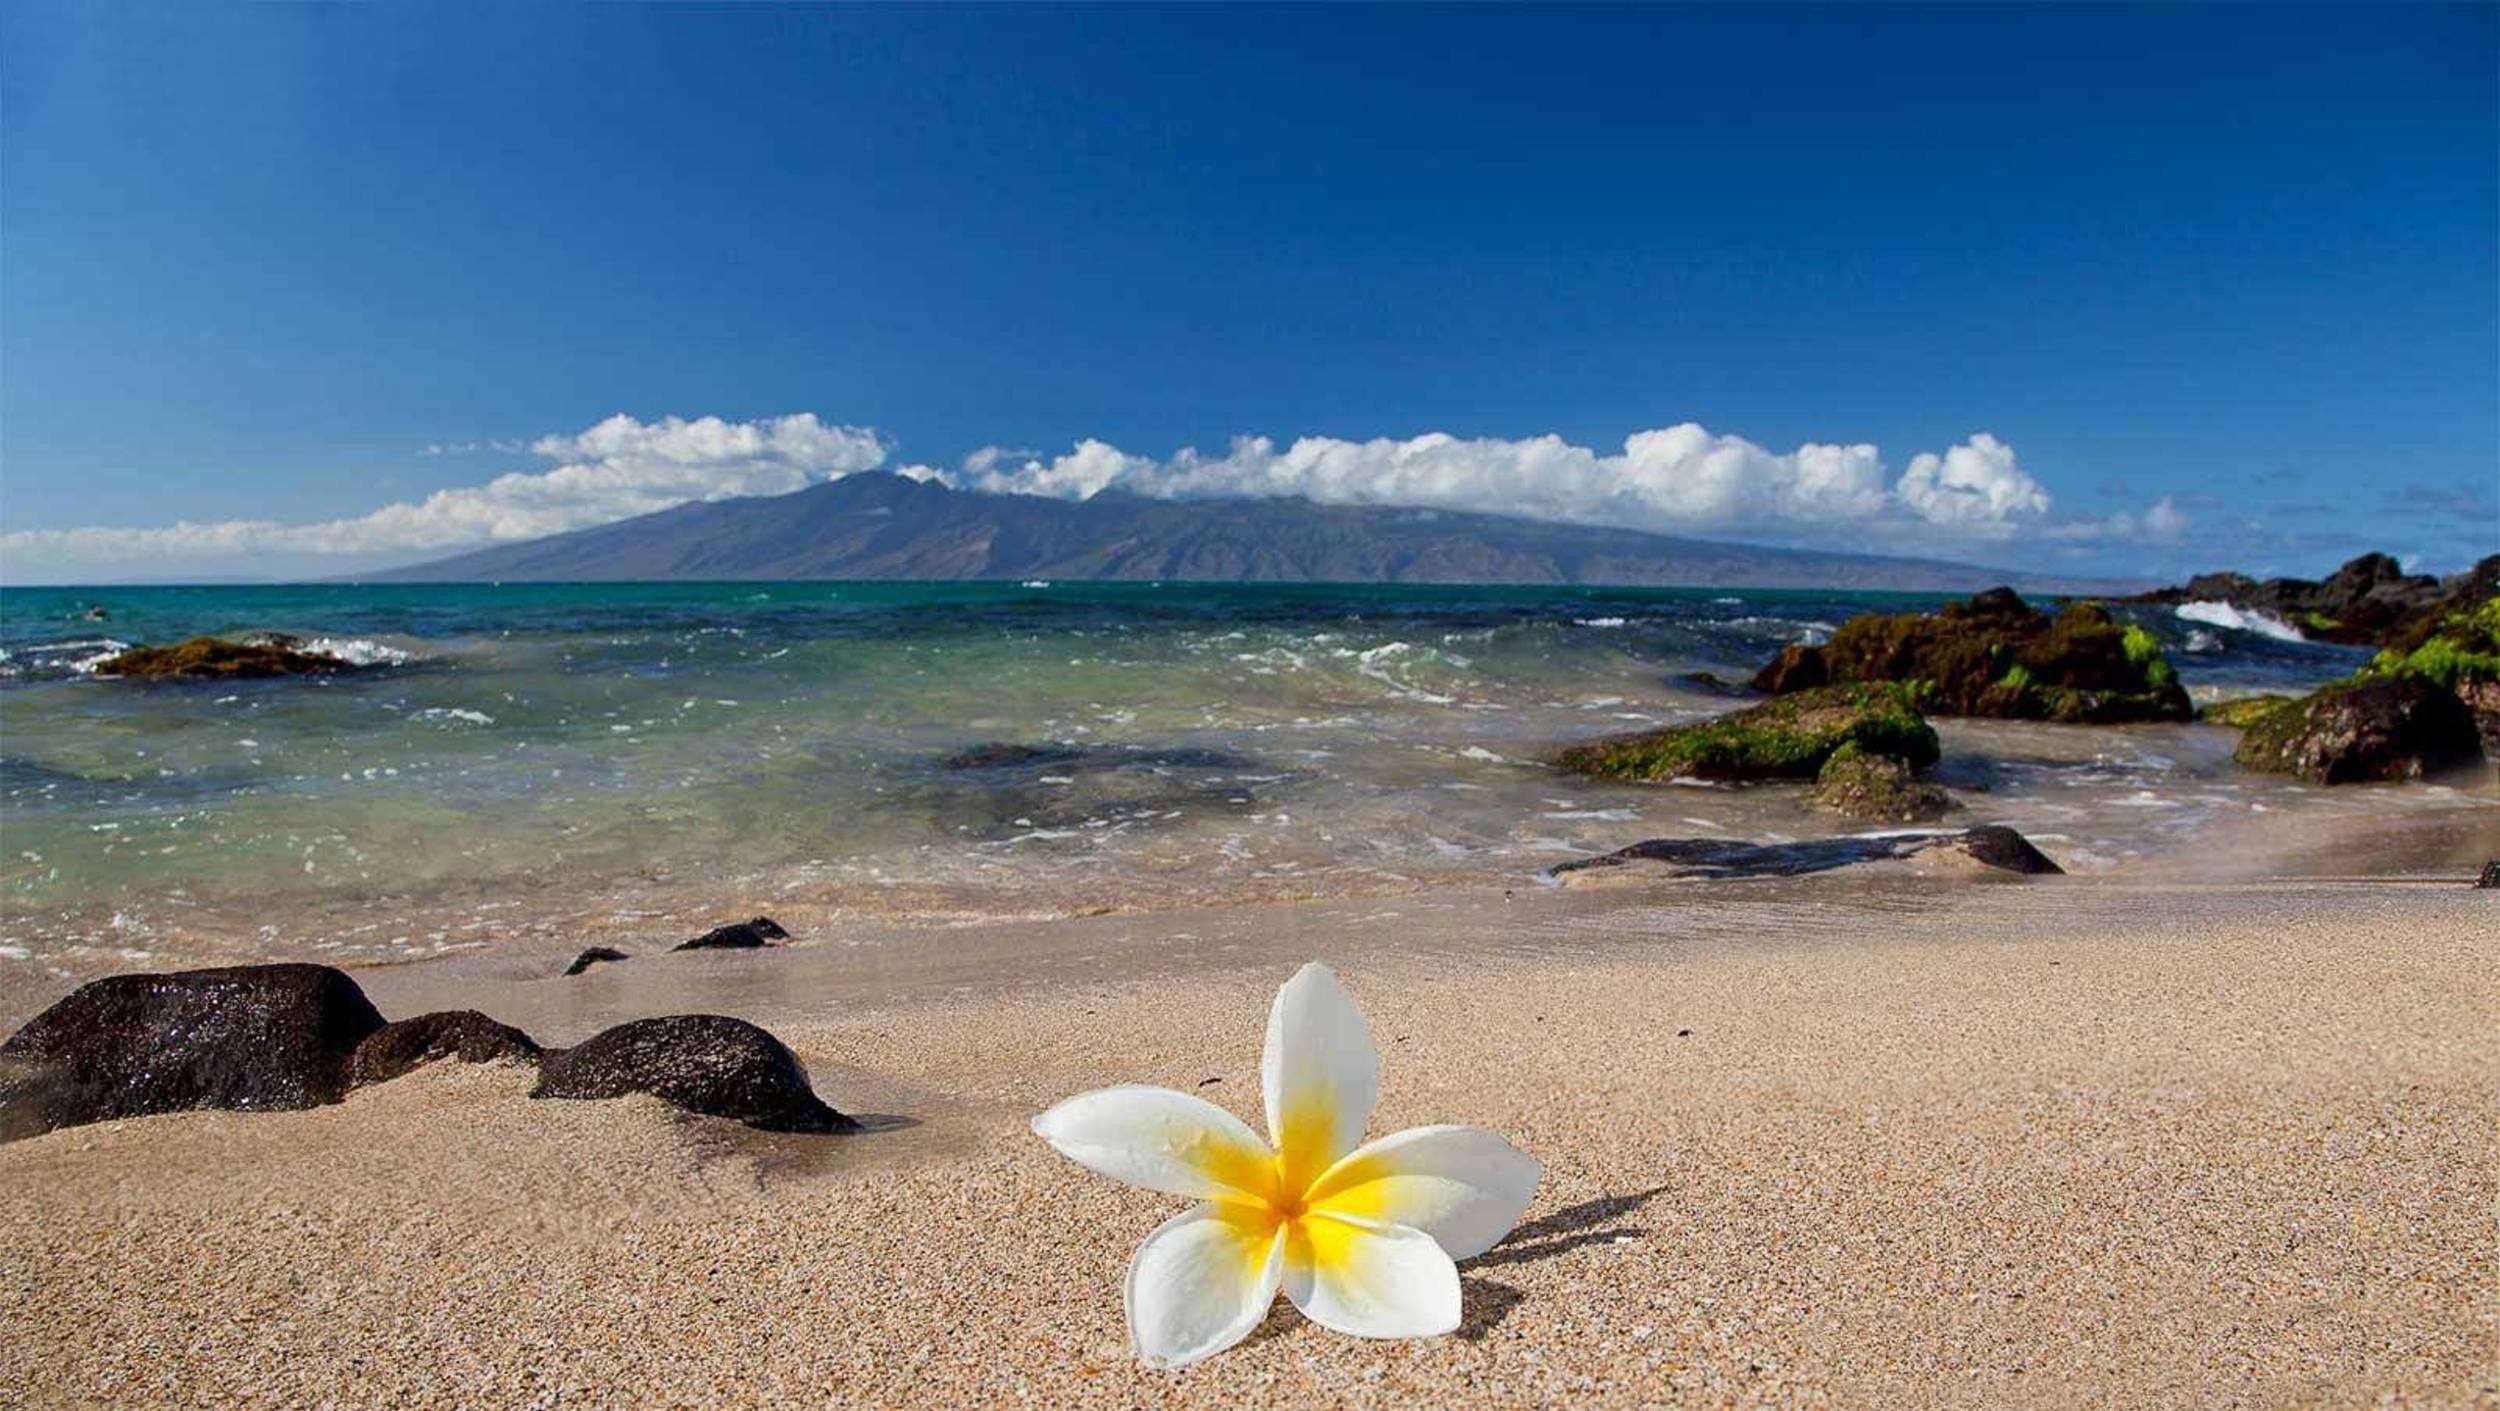 How To Get To Maui From Big Island